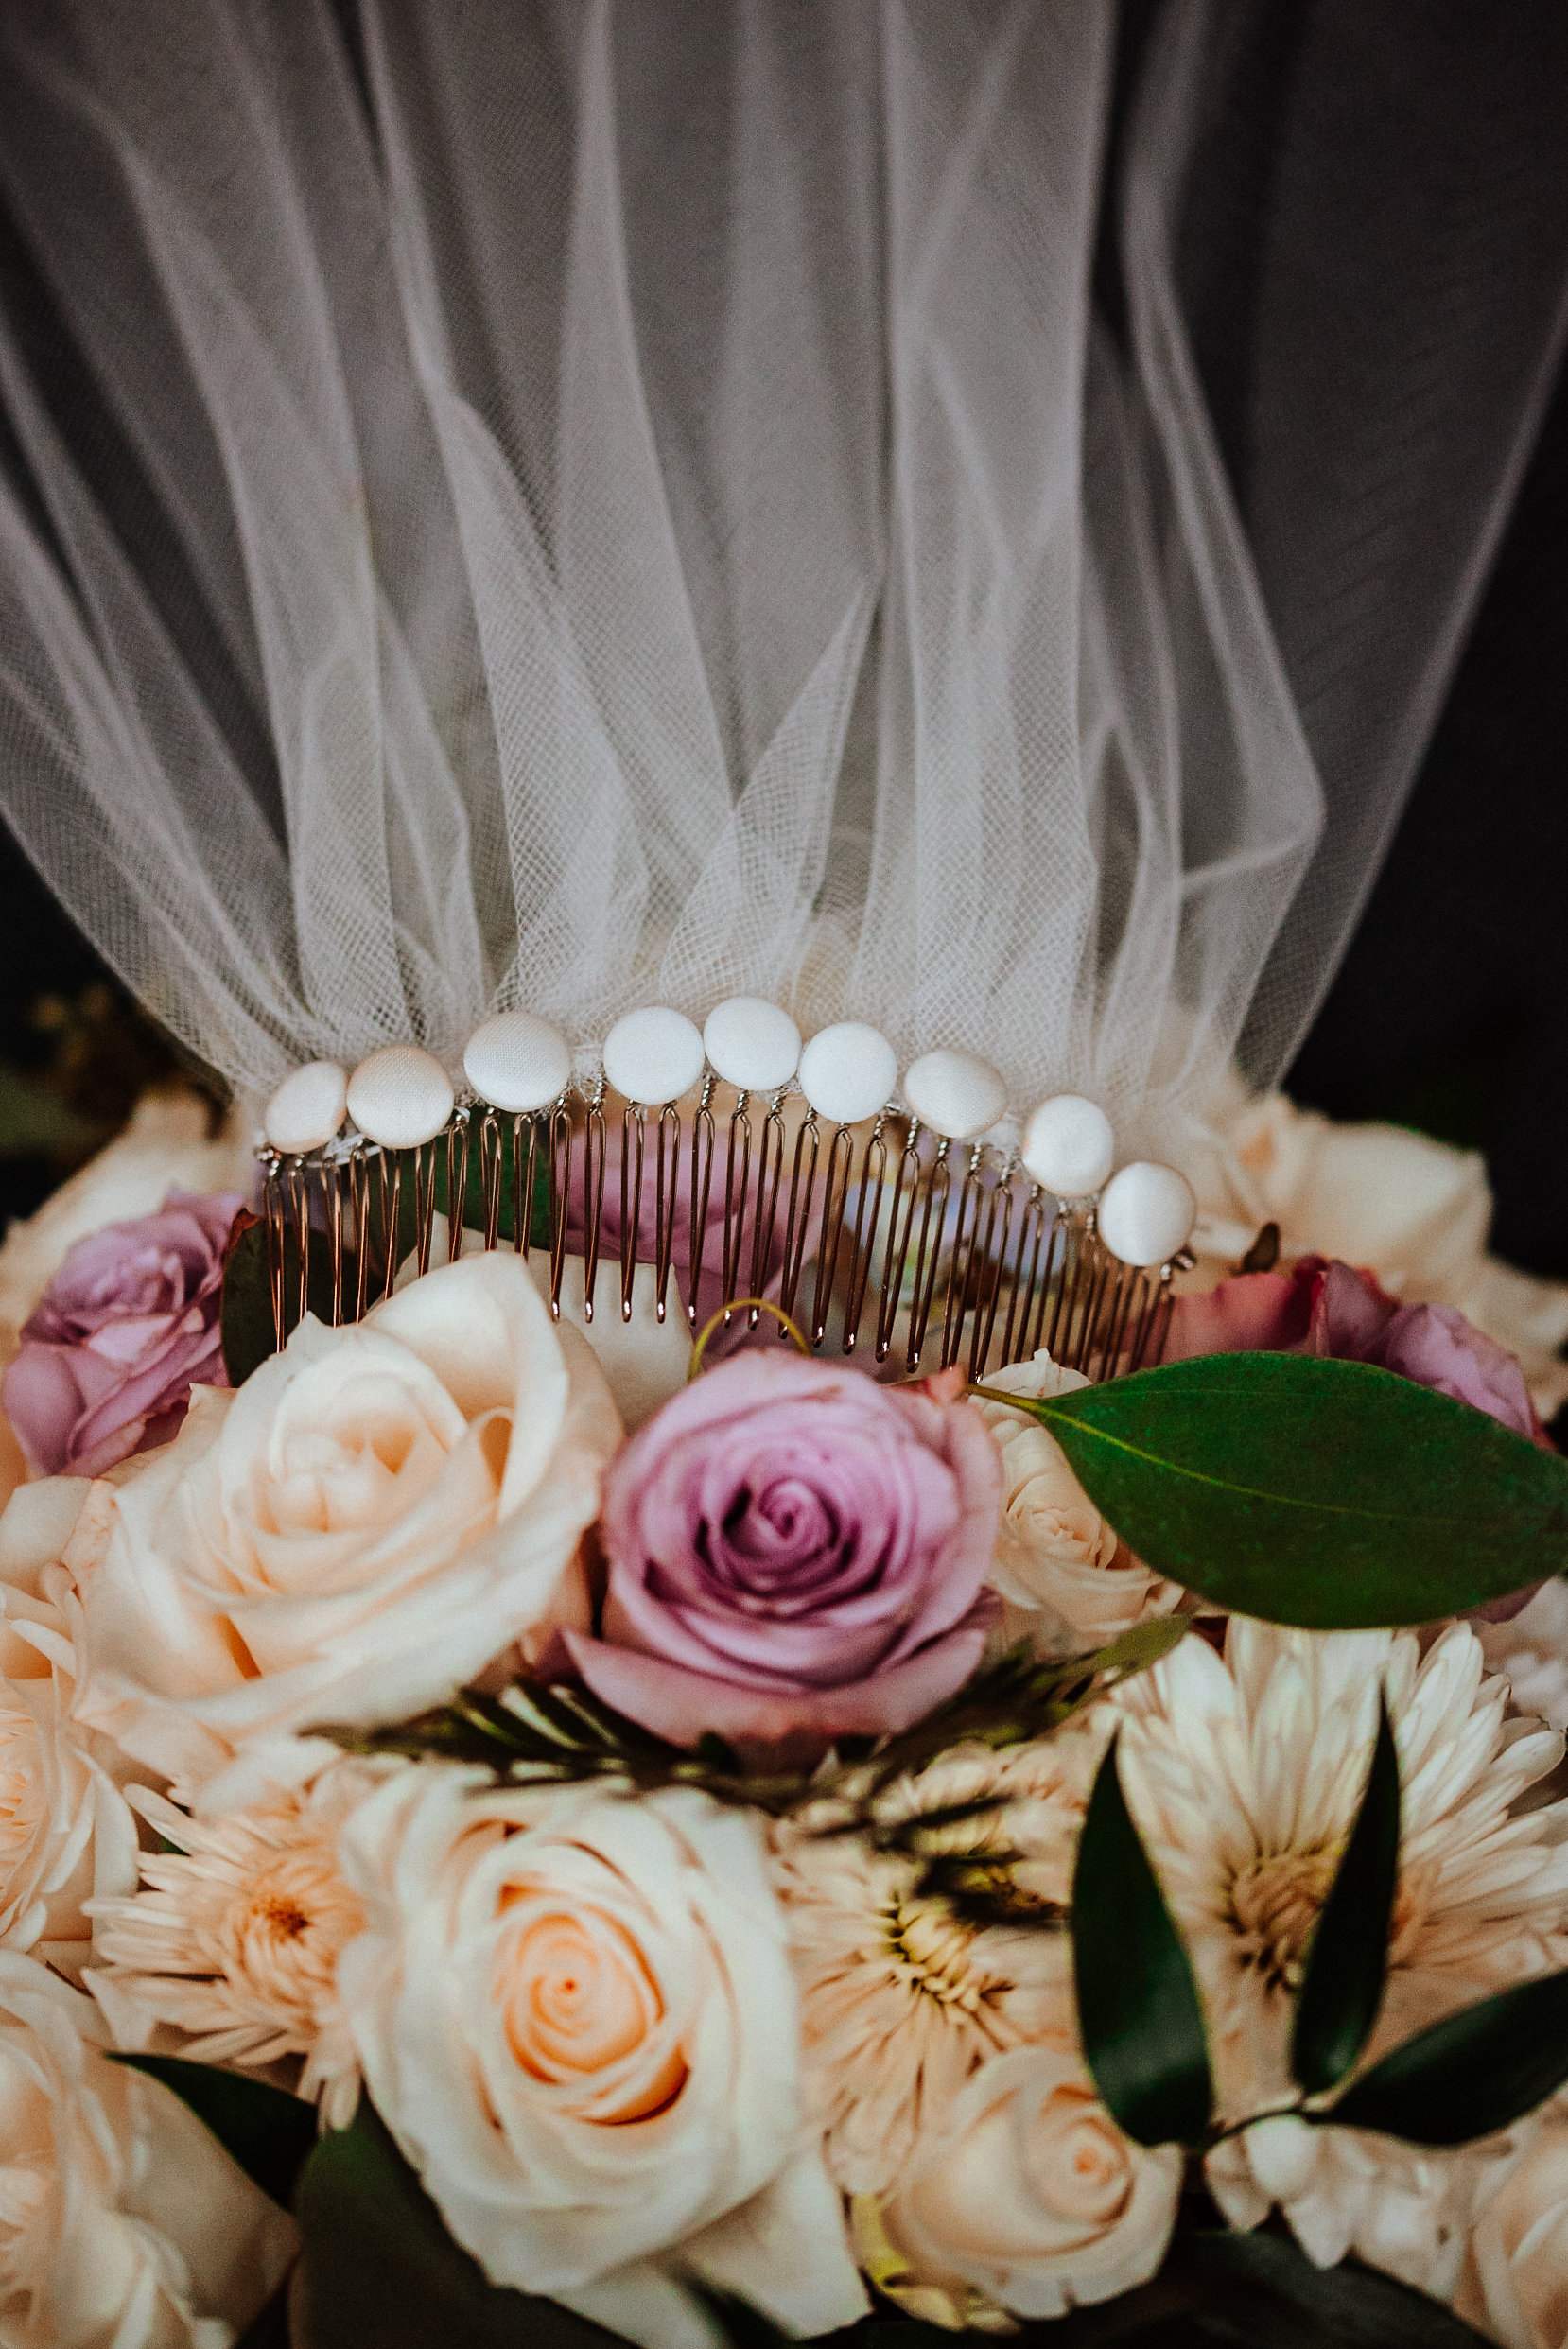 Bride's flowers and veil